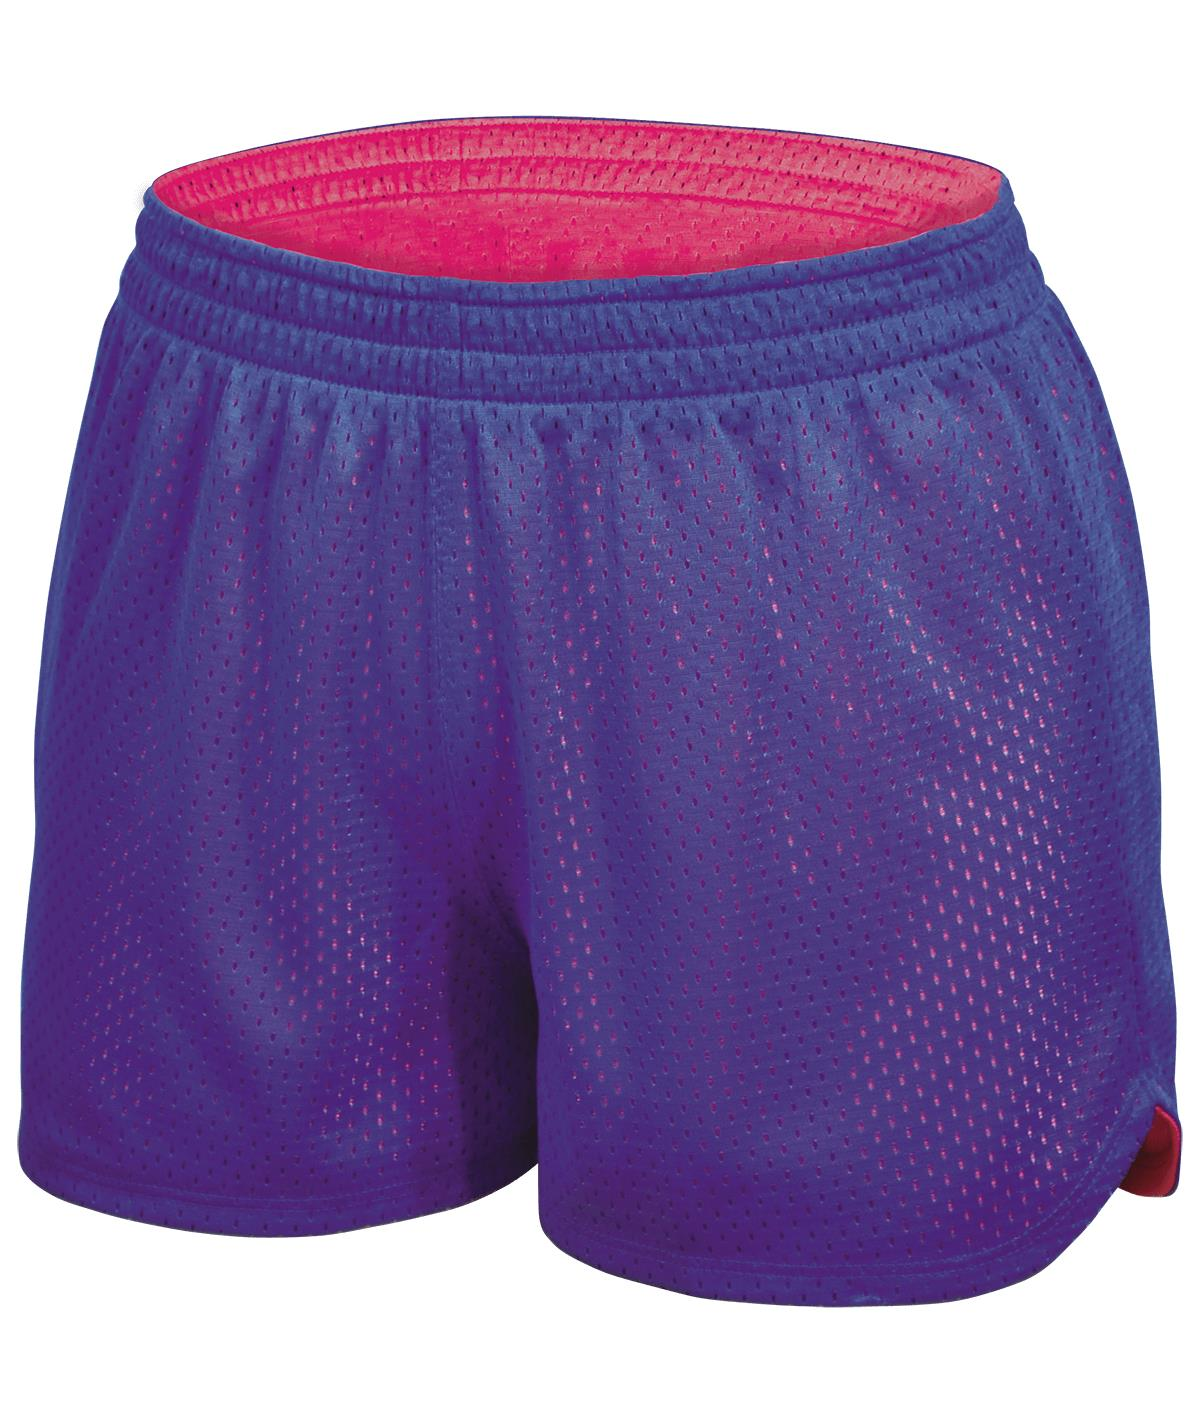 Chasse Practice Mesh Short